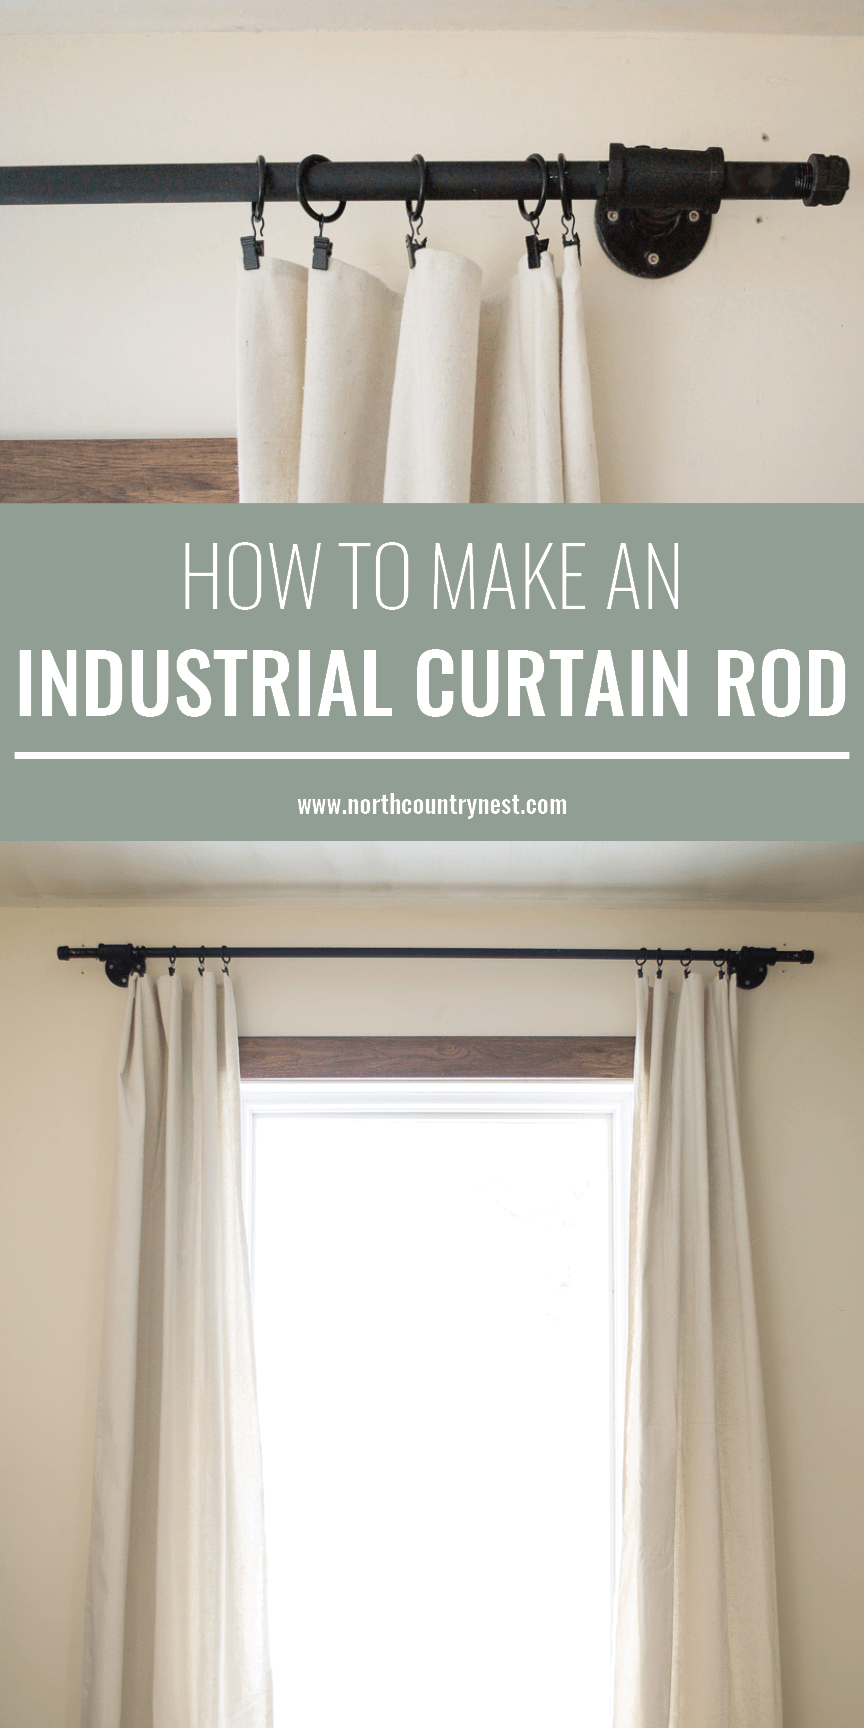 How To Make An Industrial Curtain Rod Industrial Home Design Industrial Curtain Rod Diy Curtain Rods